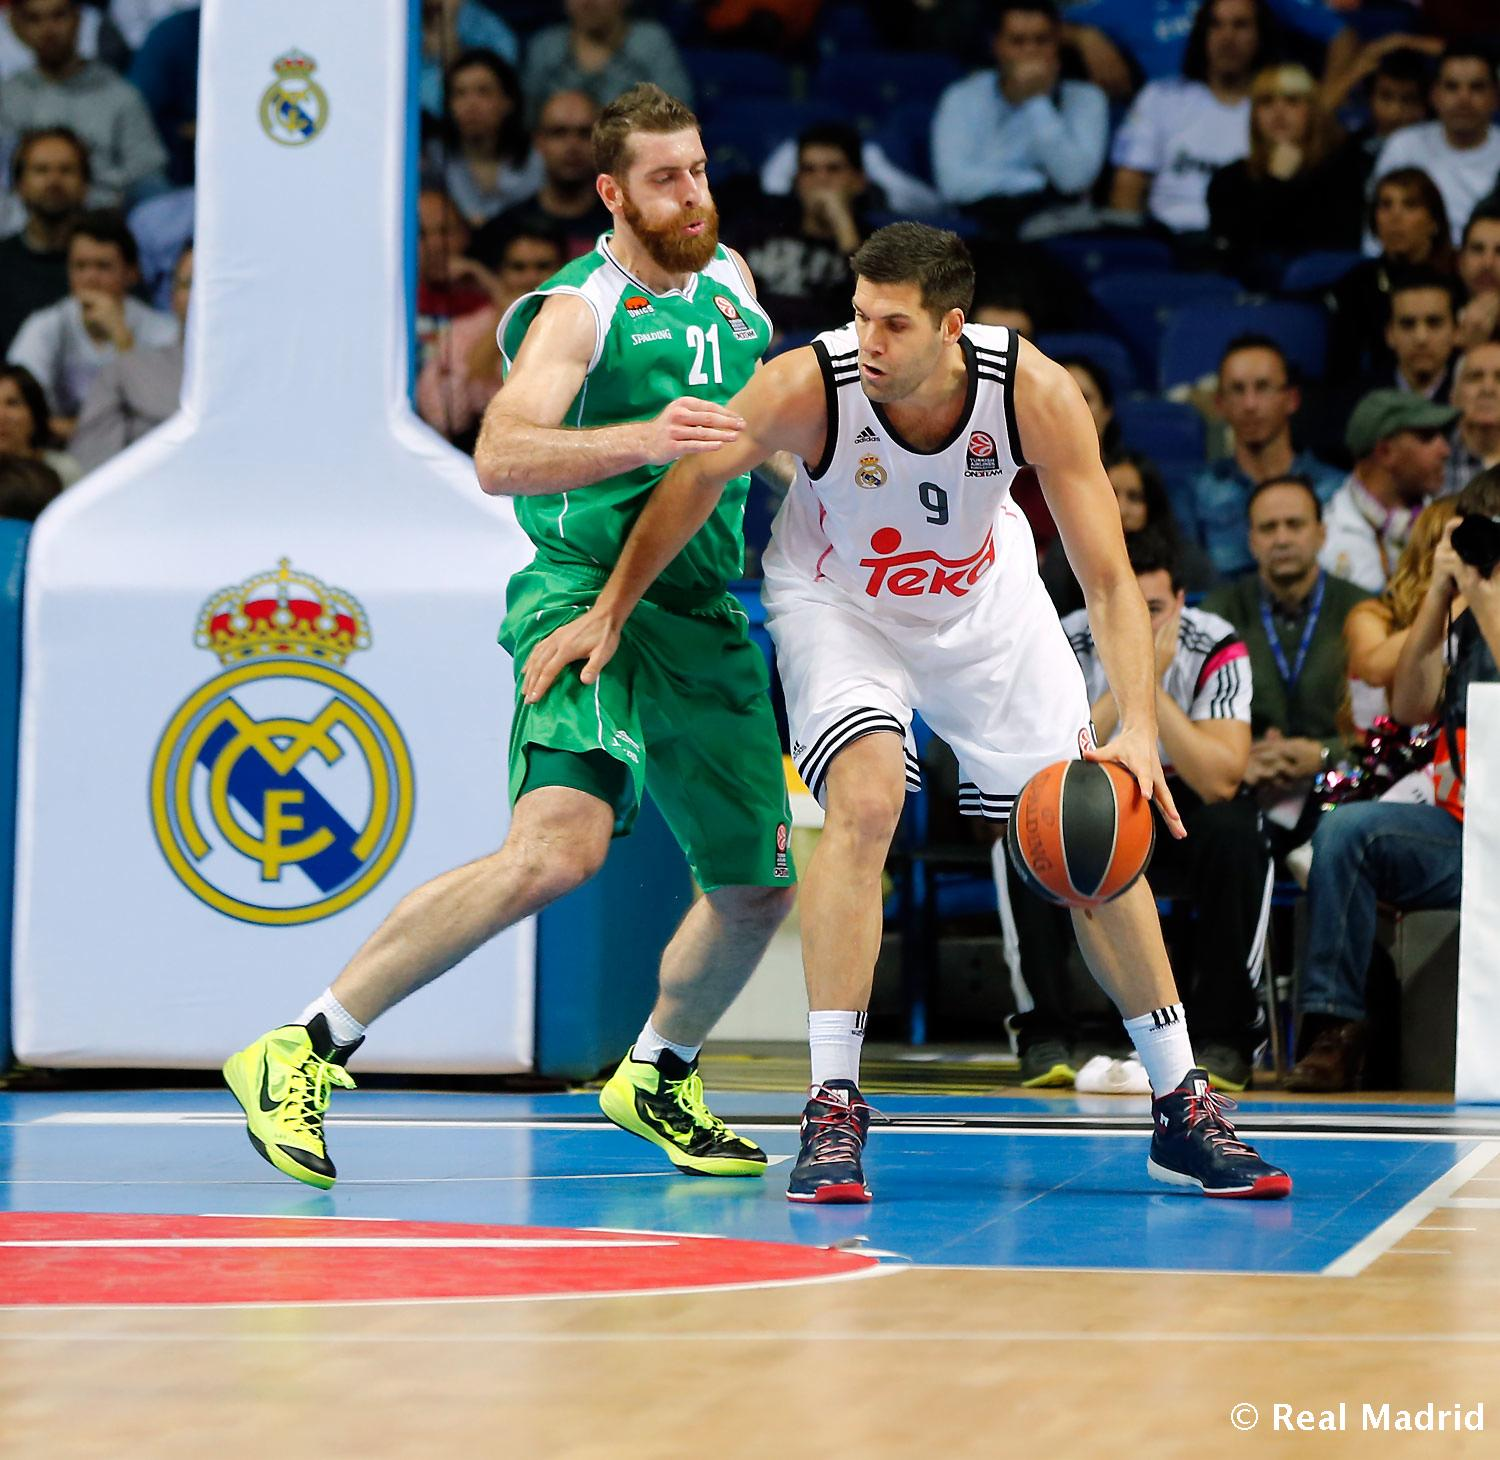 Real Madrid - Real Madrid - Unics Kazán - 27-11-2014